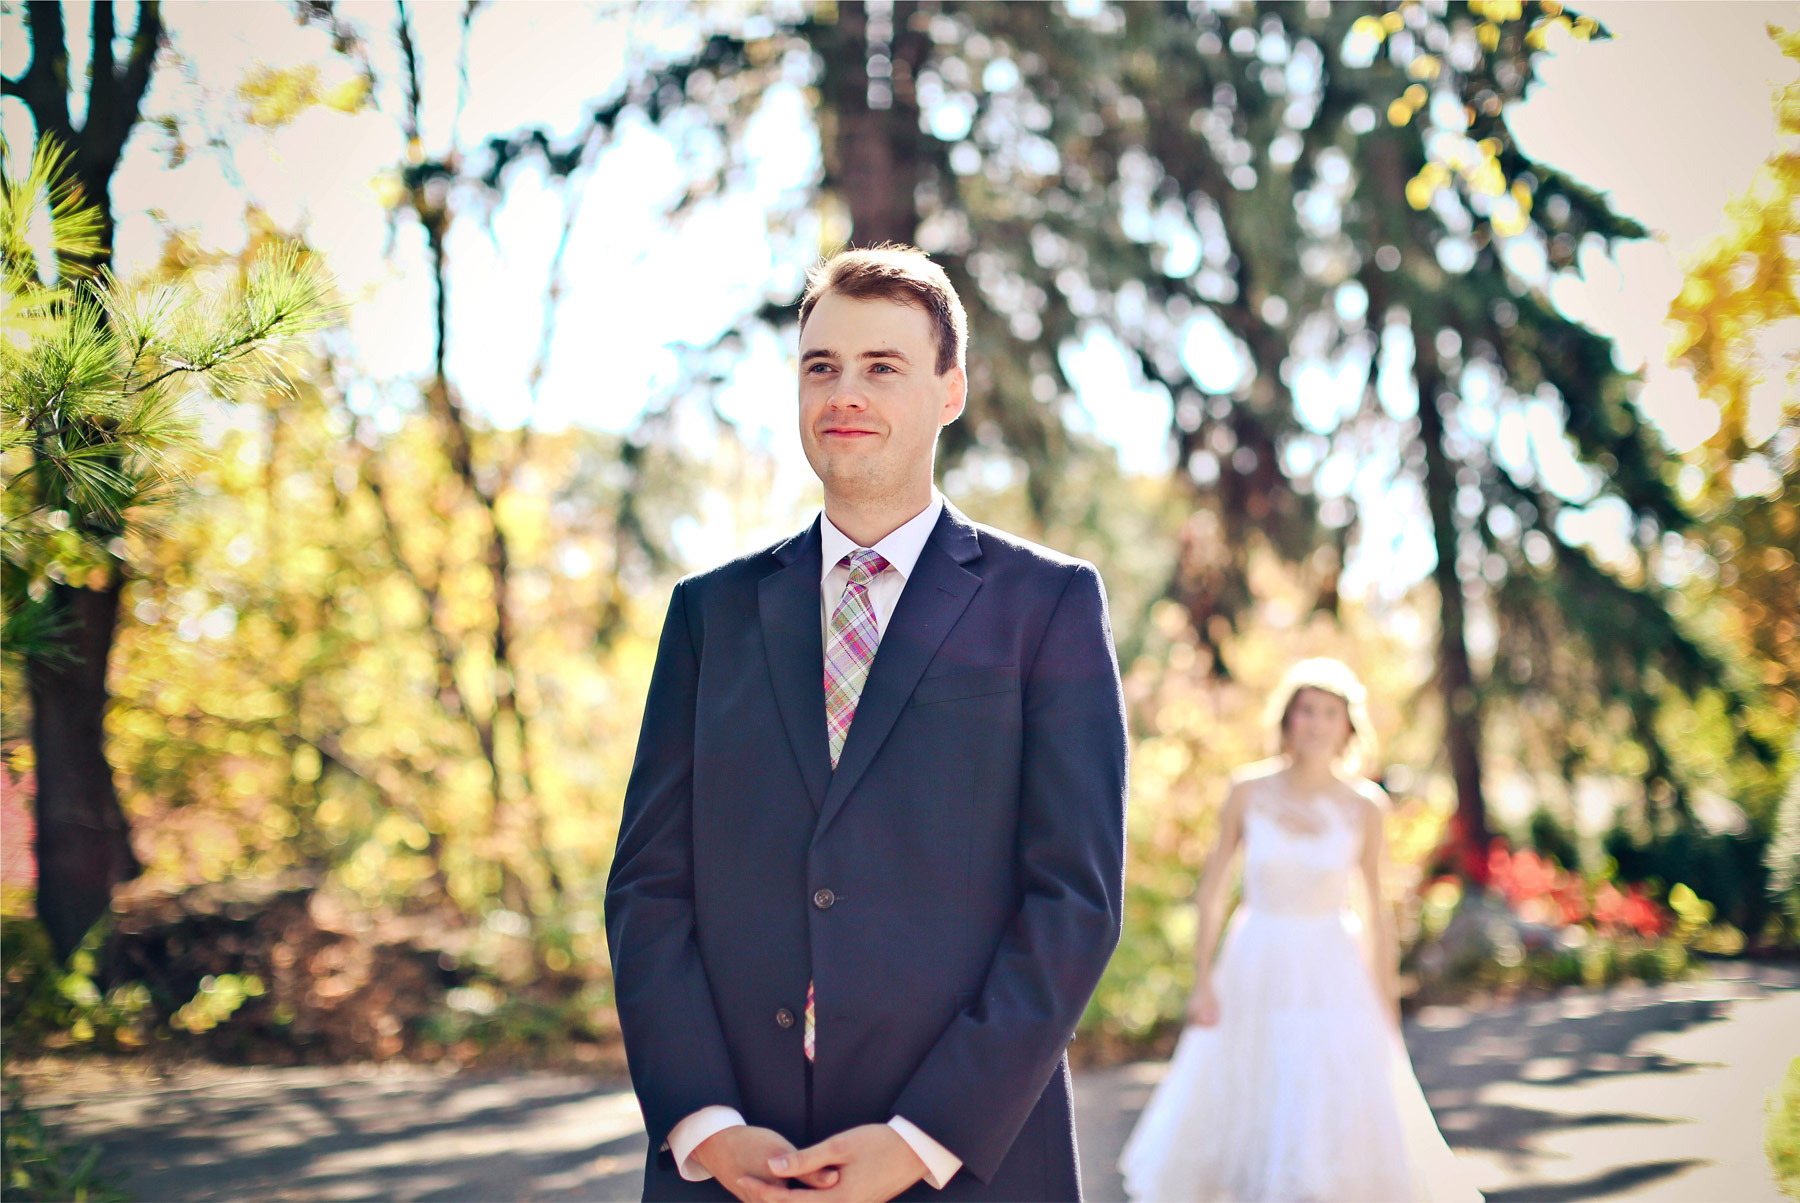 02-Minneapolis-Minnesota-Wedding-Photography-by-Vick-Photography-Fall-Colors-Autumn-Leaves-First-Look-Madeline-&-Matt.jpg